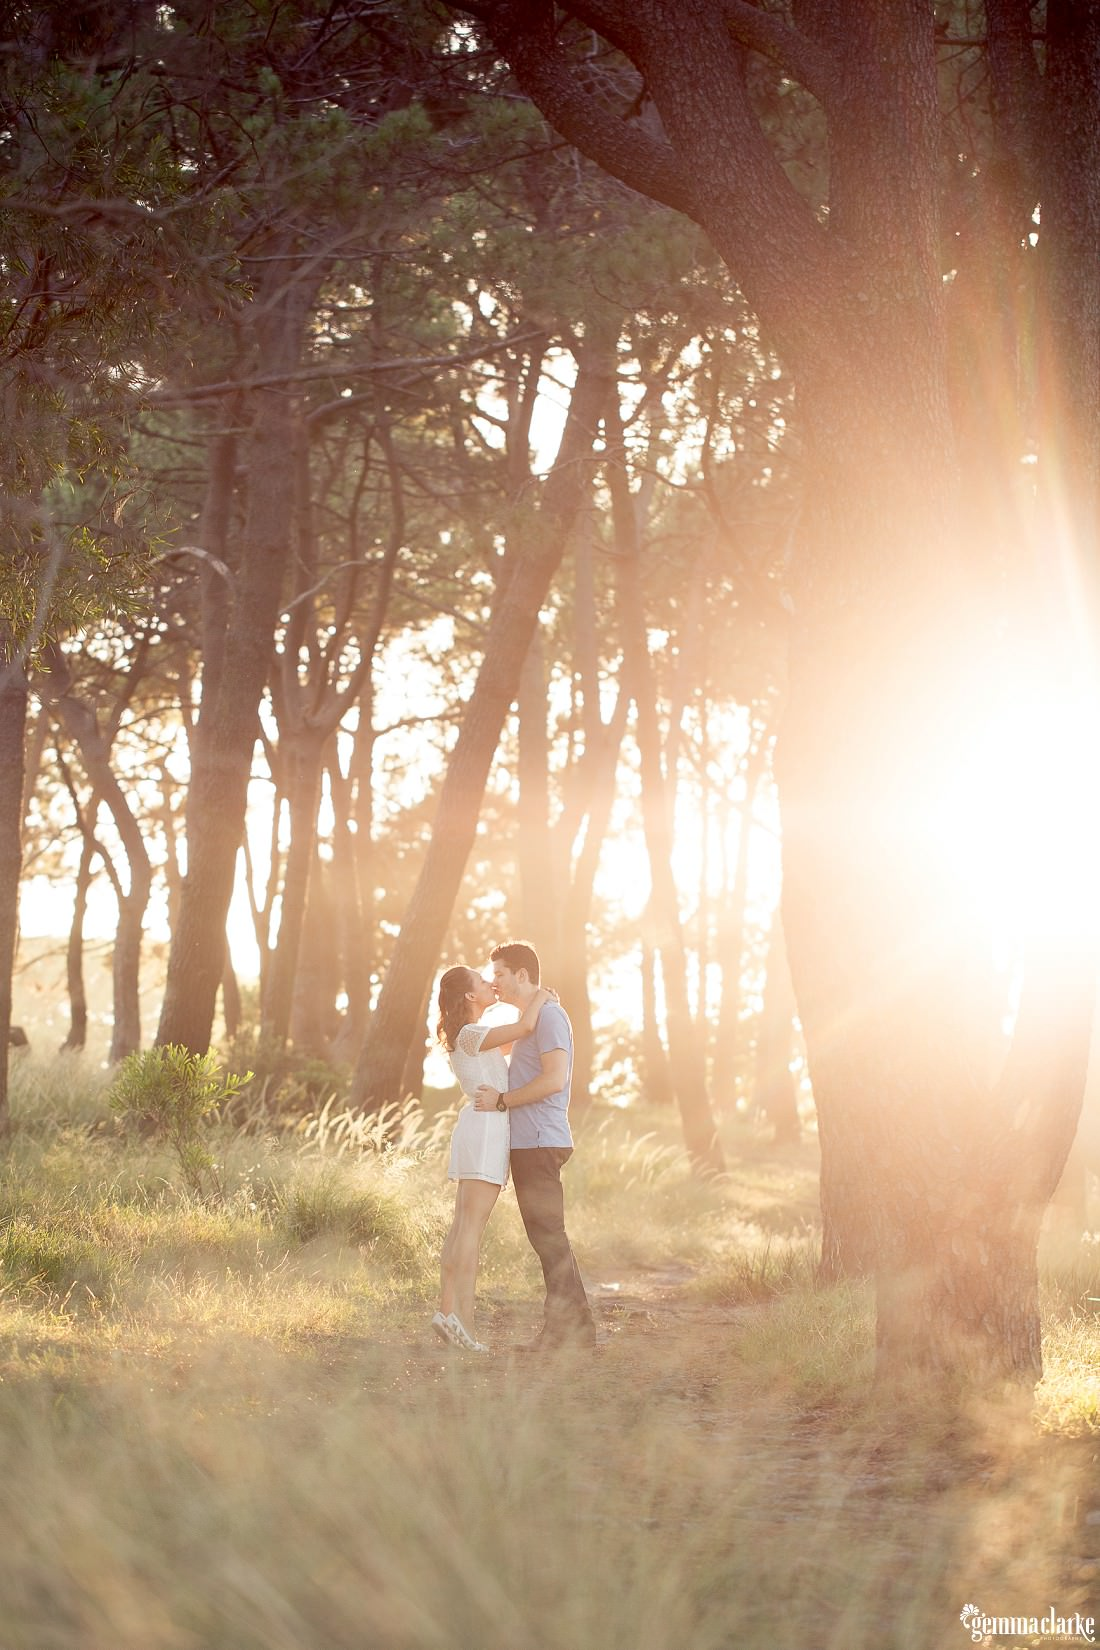 gemmaclarkephotography_centennial-park-engagement-photos_luisa-and-nick_0009